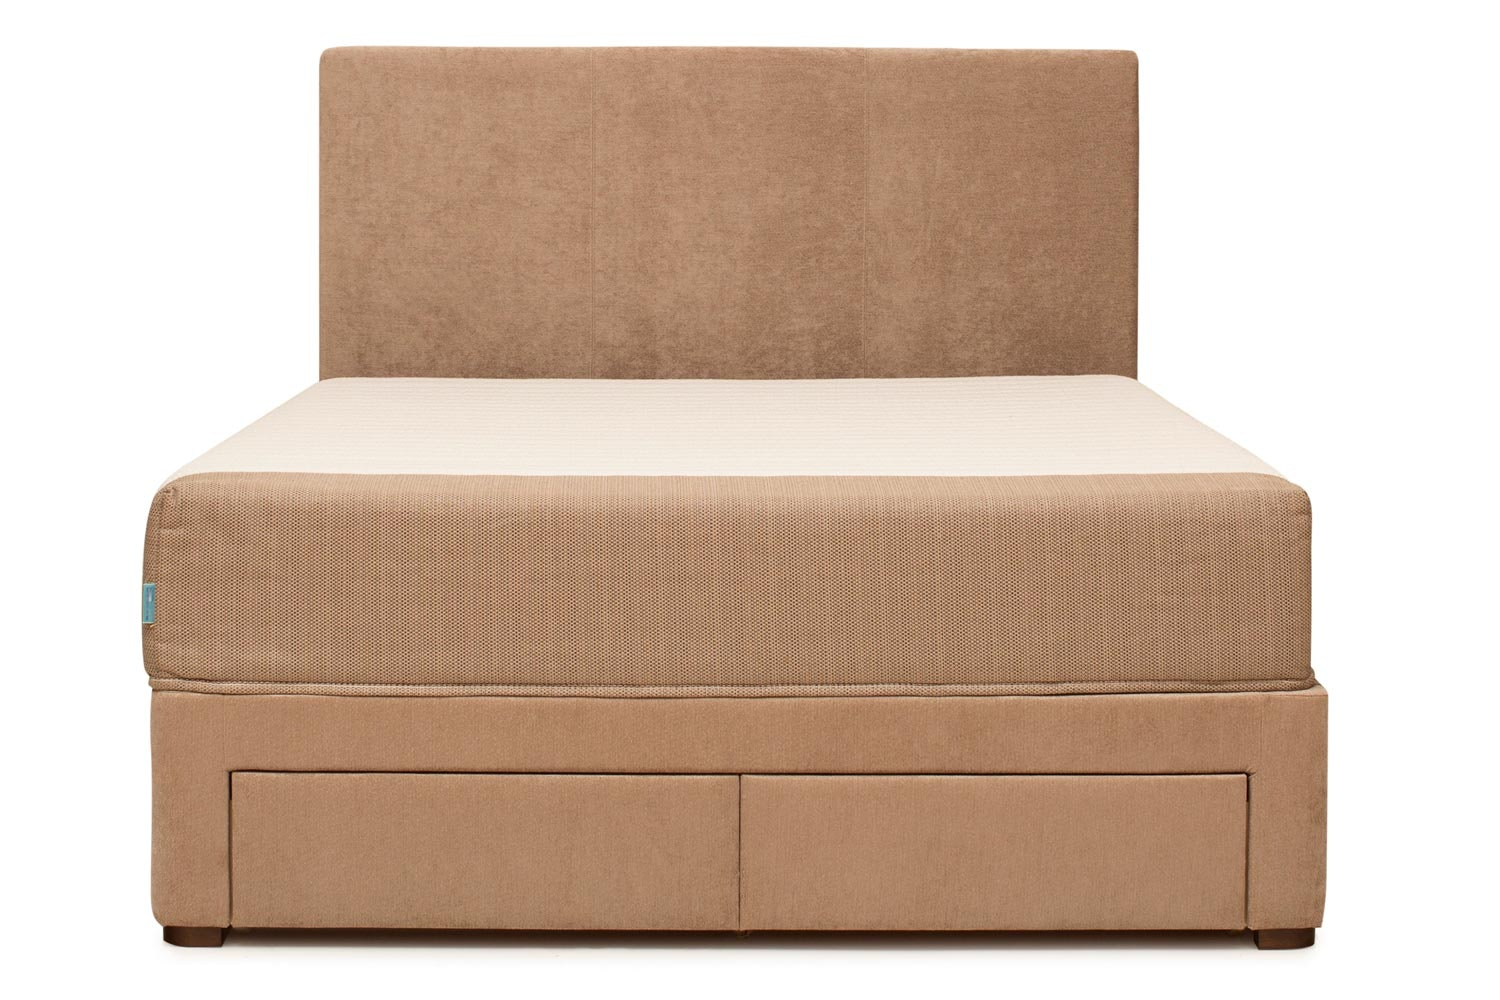 Duval Bed   Vertical Stitch with Storage   Mink   4ft6